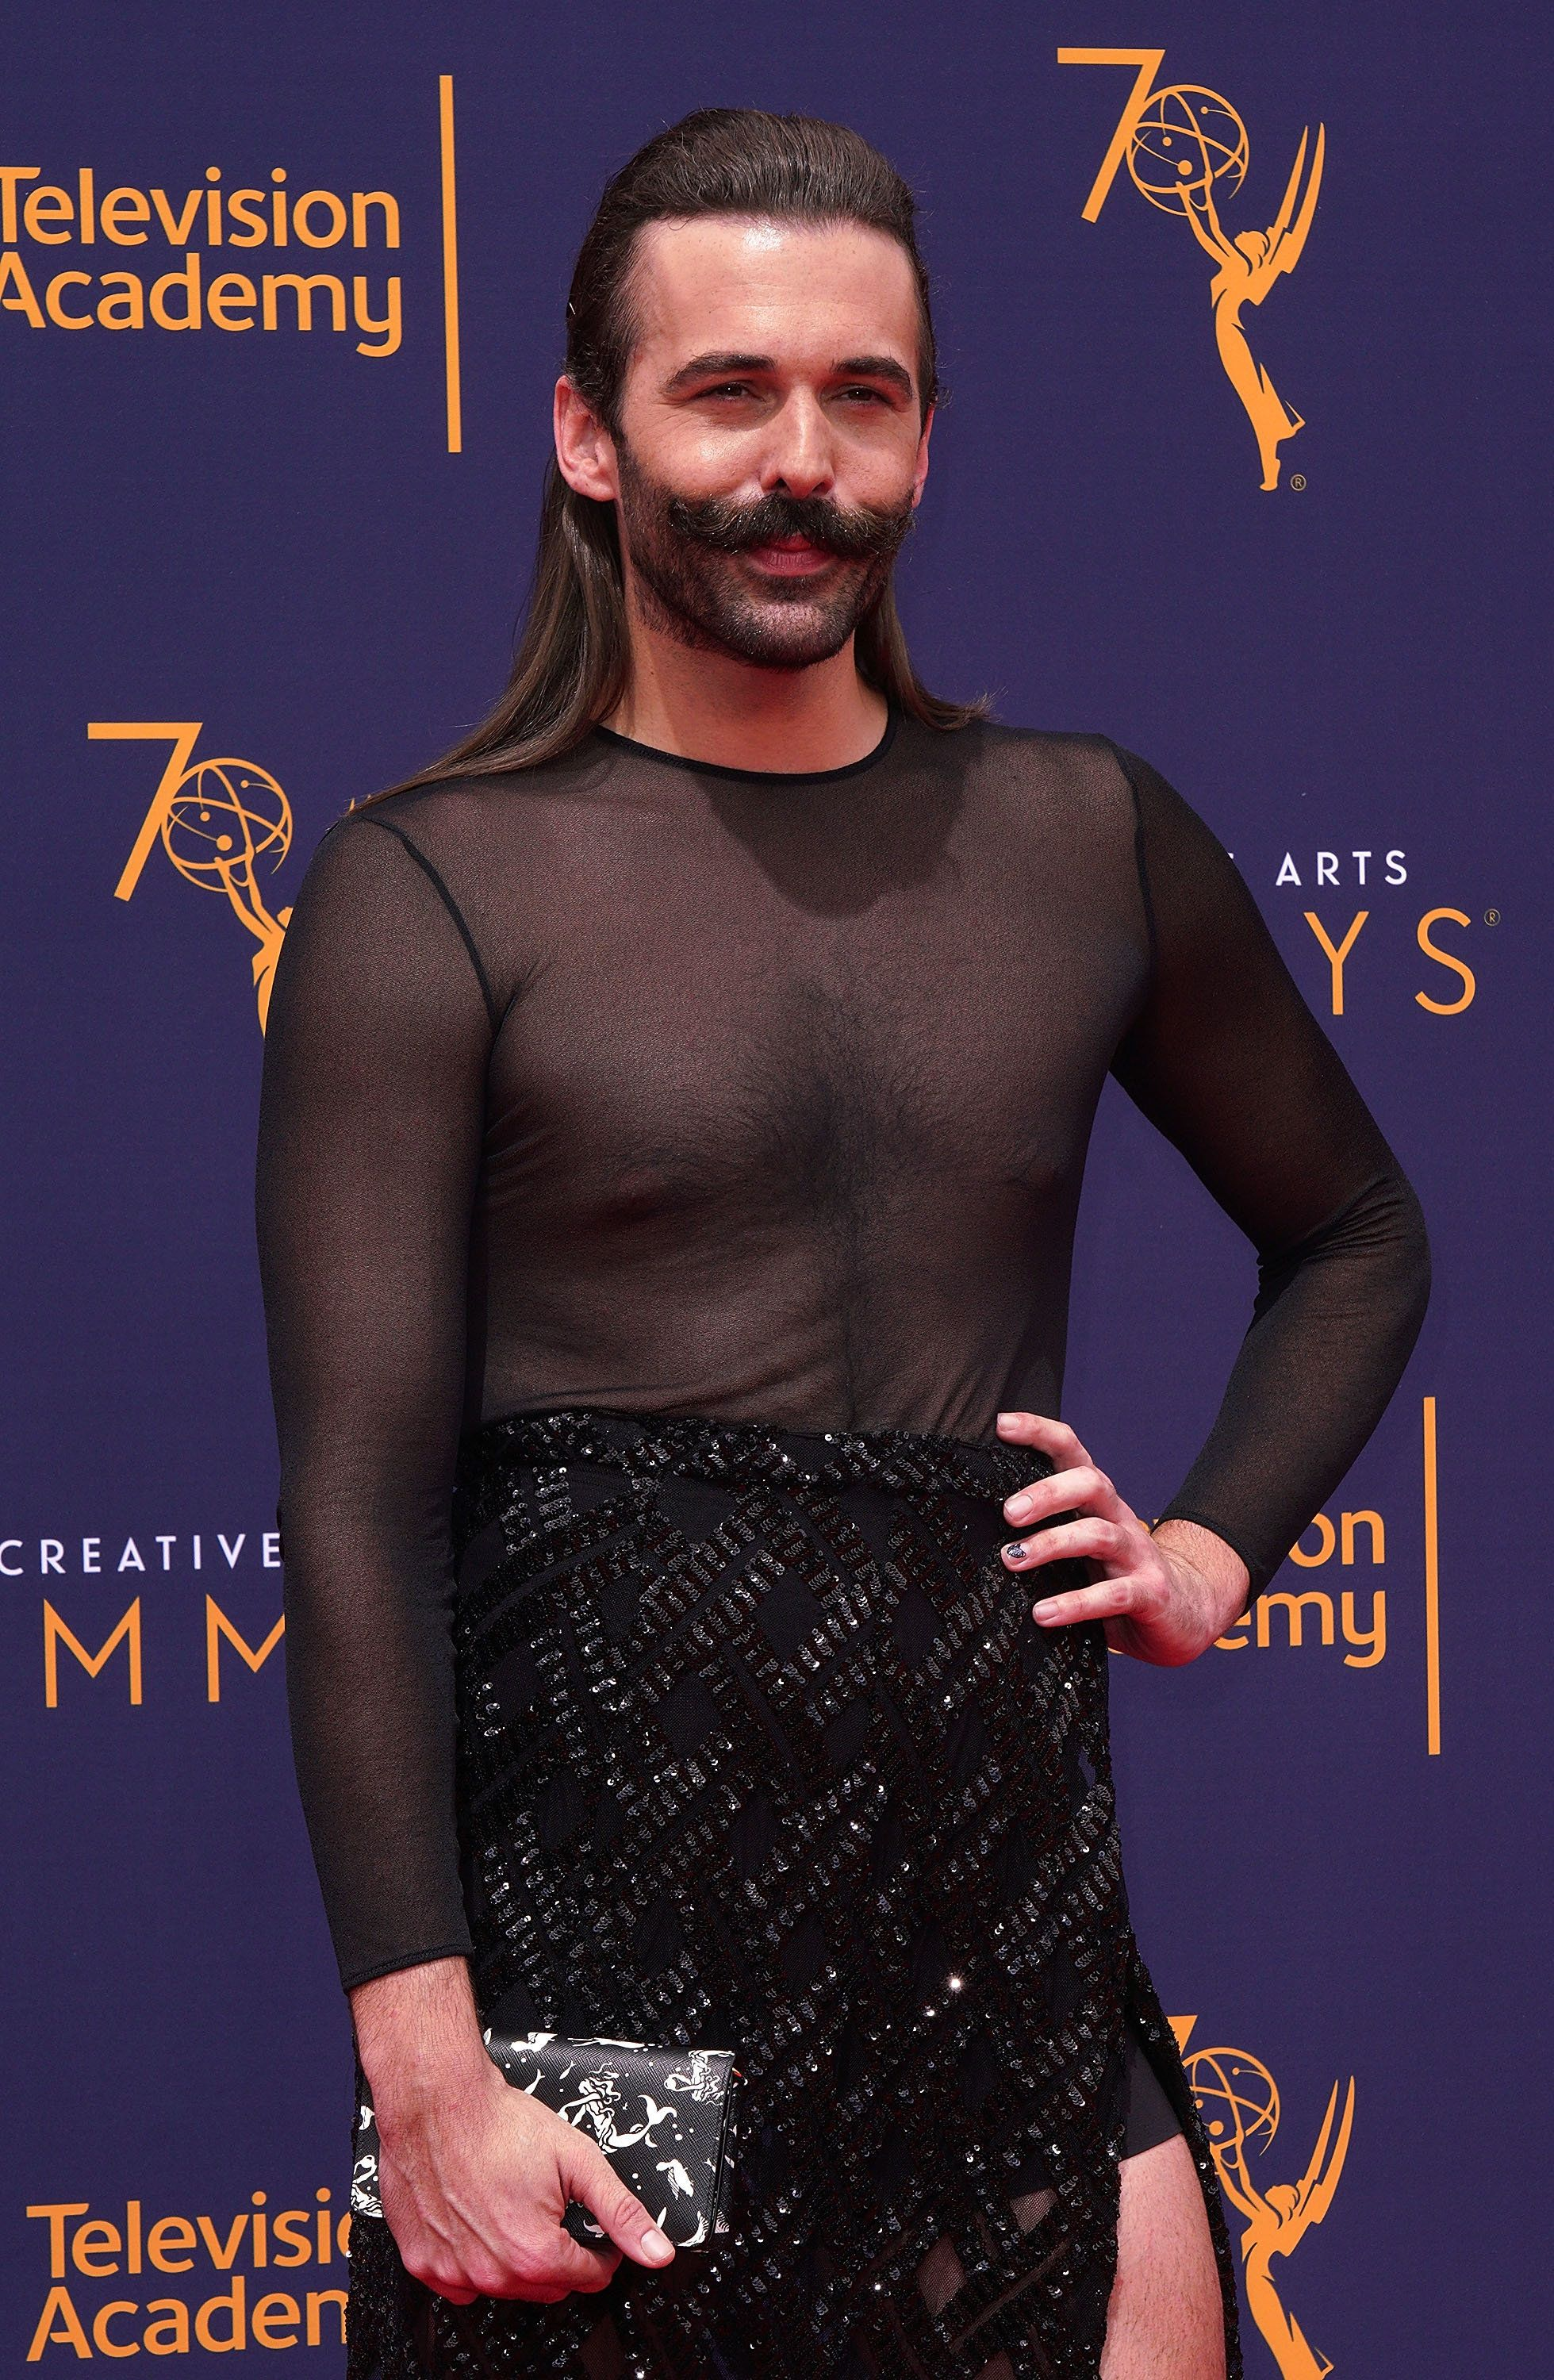 LOS ANGELES, CA - SEPTEMBER 09:  Jonathan Van Ness attends the 2018 Creative Arts Emmy Awards at Microsoft Theater on September 9, 2018 in Los Angeles, California.  (Photo by JC Olivera/WireImage)